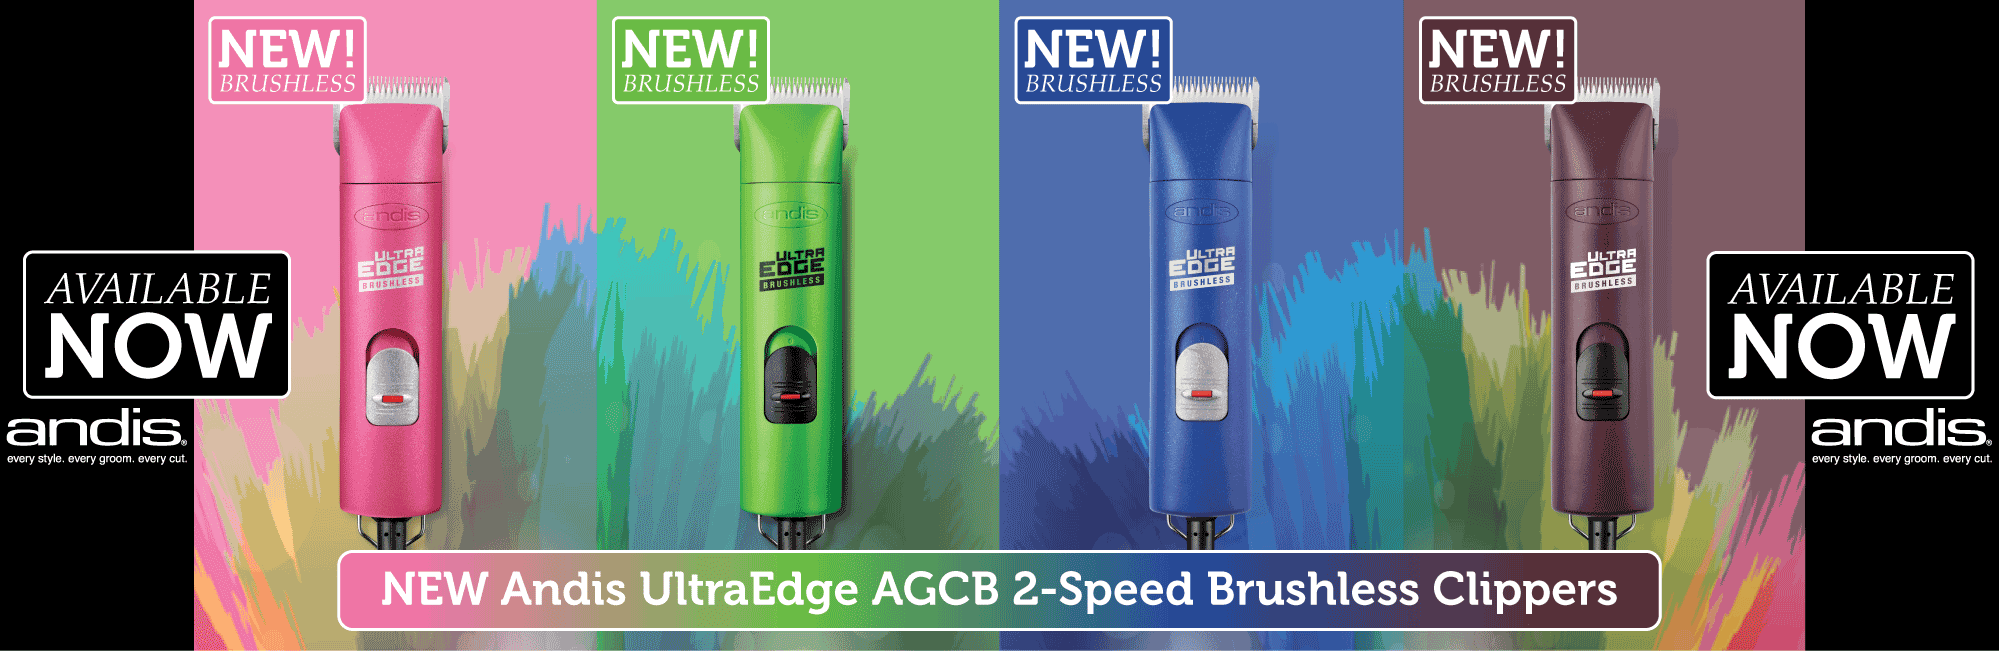 Andis AGCB 2-Speed Brushless Clippers